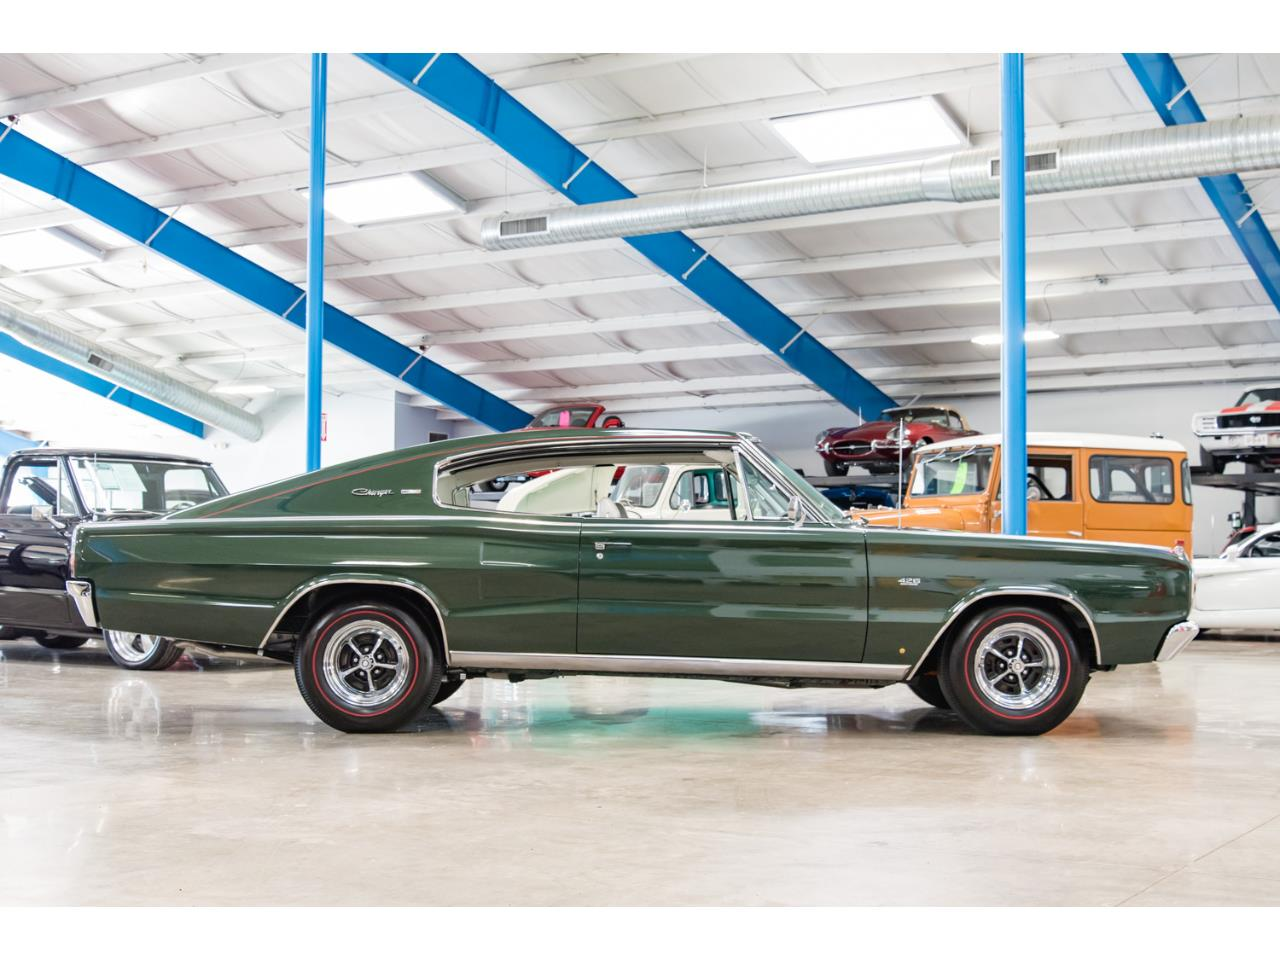 Large Picture of Classic '67 Dodge Charger - $175,000.00 Offered by John Kufleitner's Galleria - LKM1